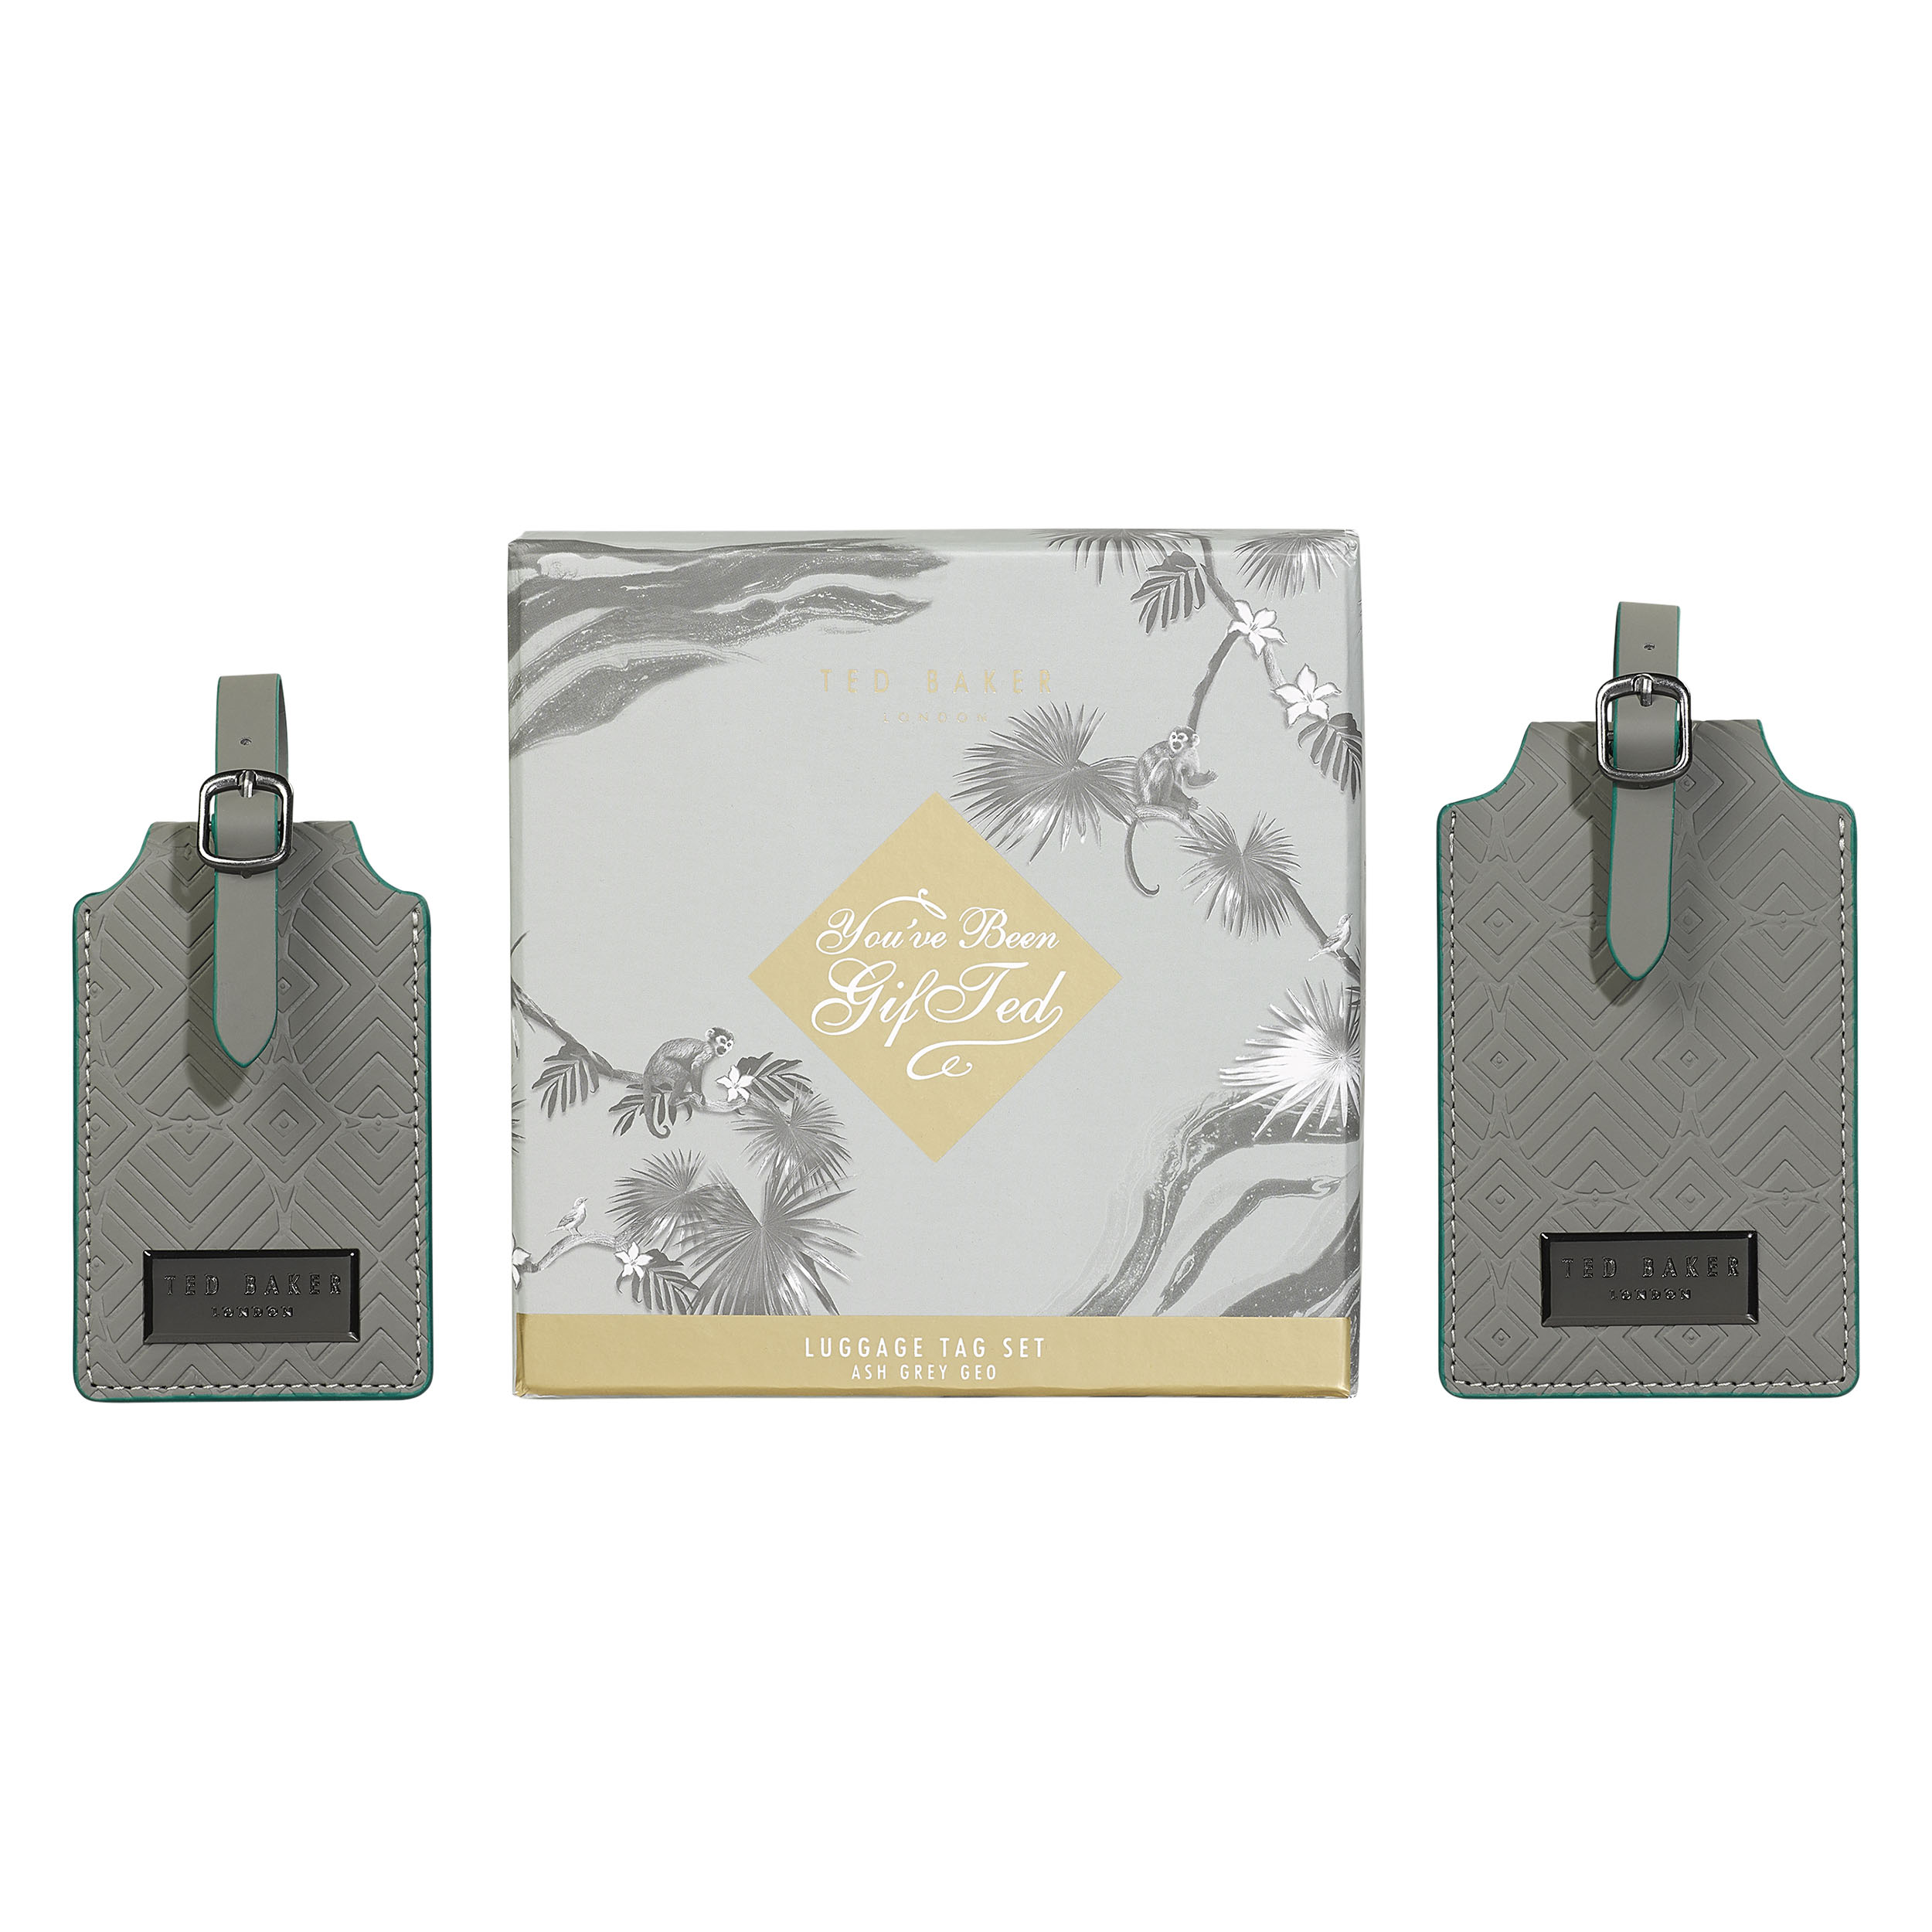 Luggage Tags, Ash Grey, Set of 2